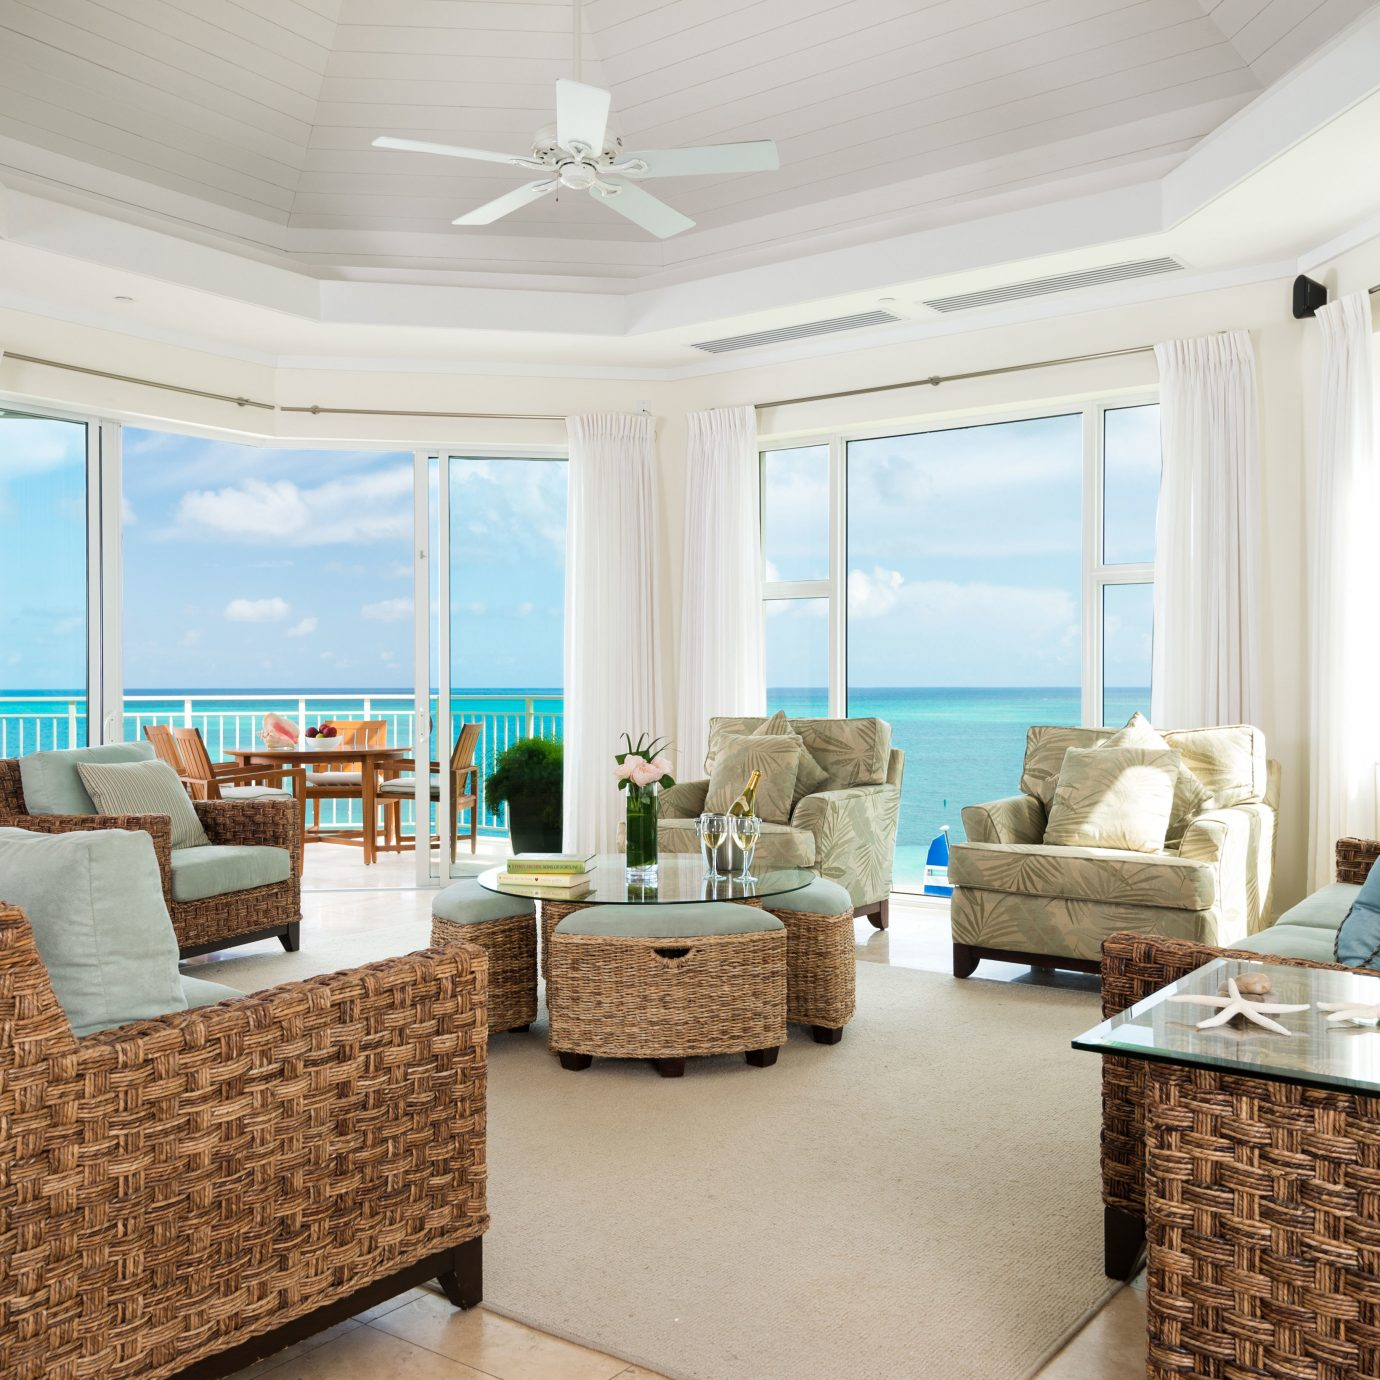 Beachfront Family Scenic views sofa living room property home condominium Suite mansion cottage Villa